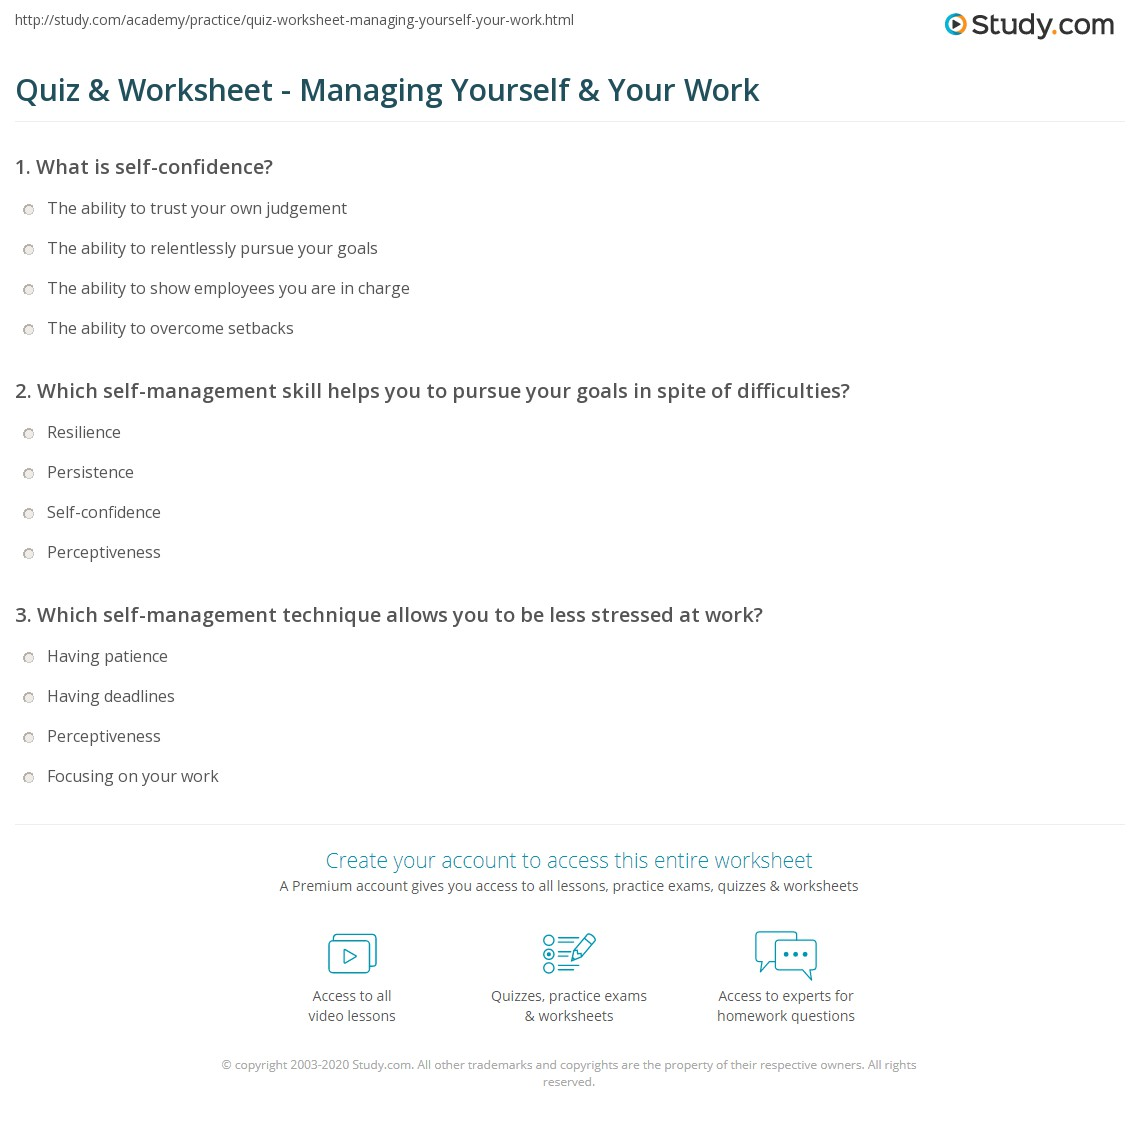 quiz worksheet managing yourself your work com which self management skill helps you to pursue your goals in spite of difficulties